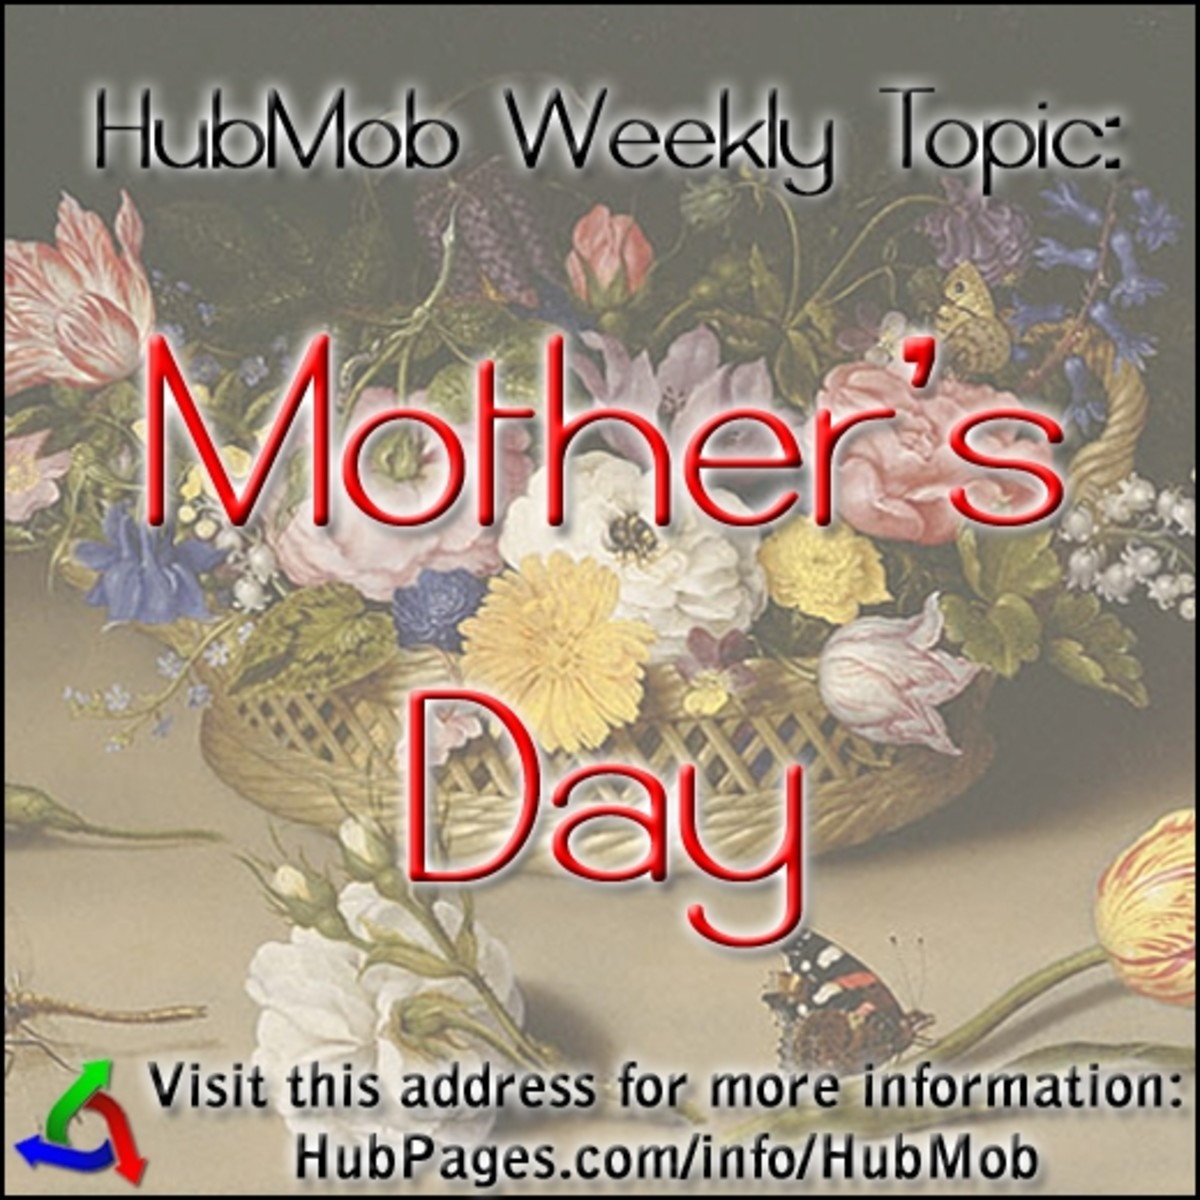 A Mother's day HubMob